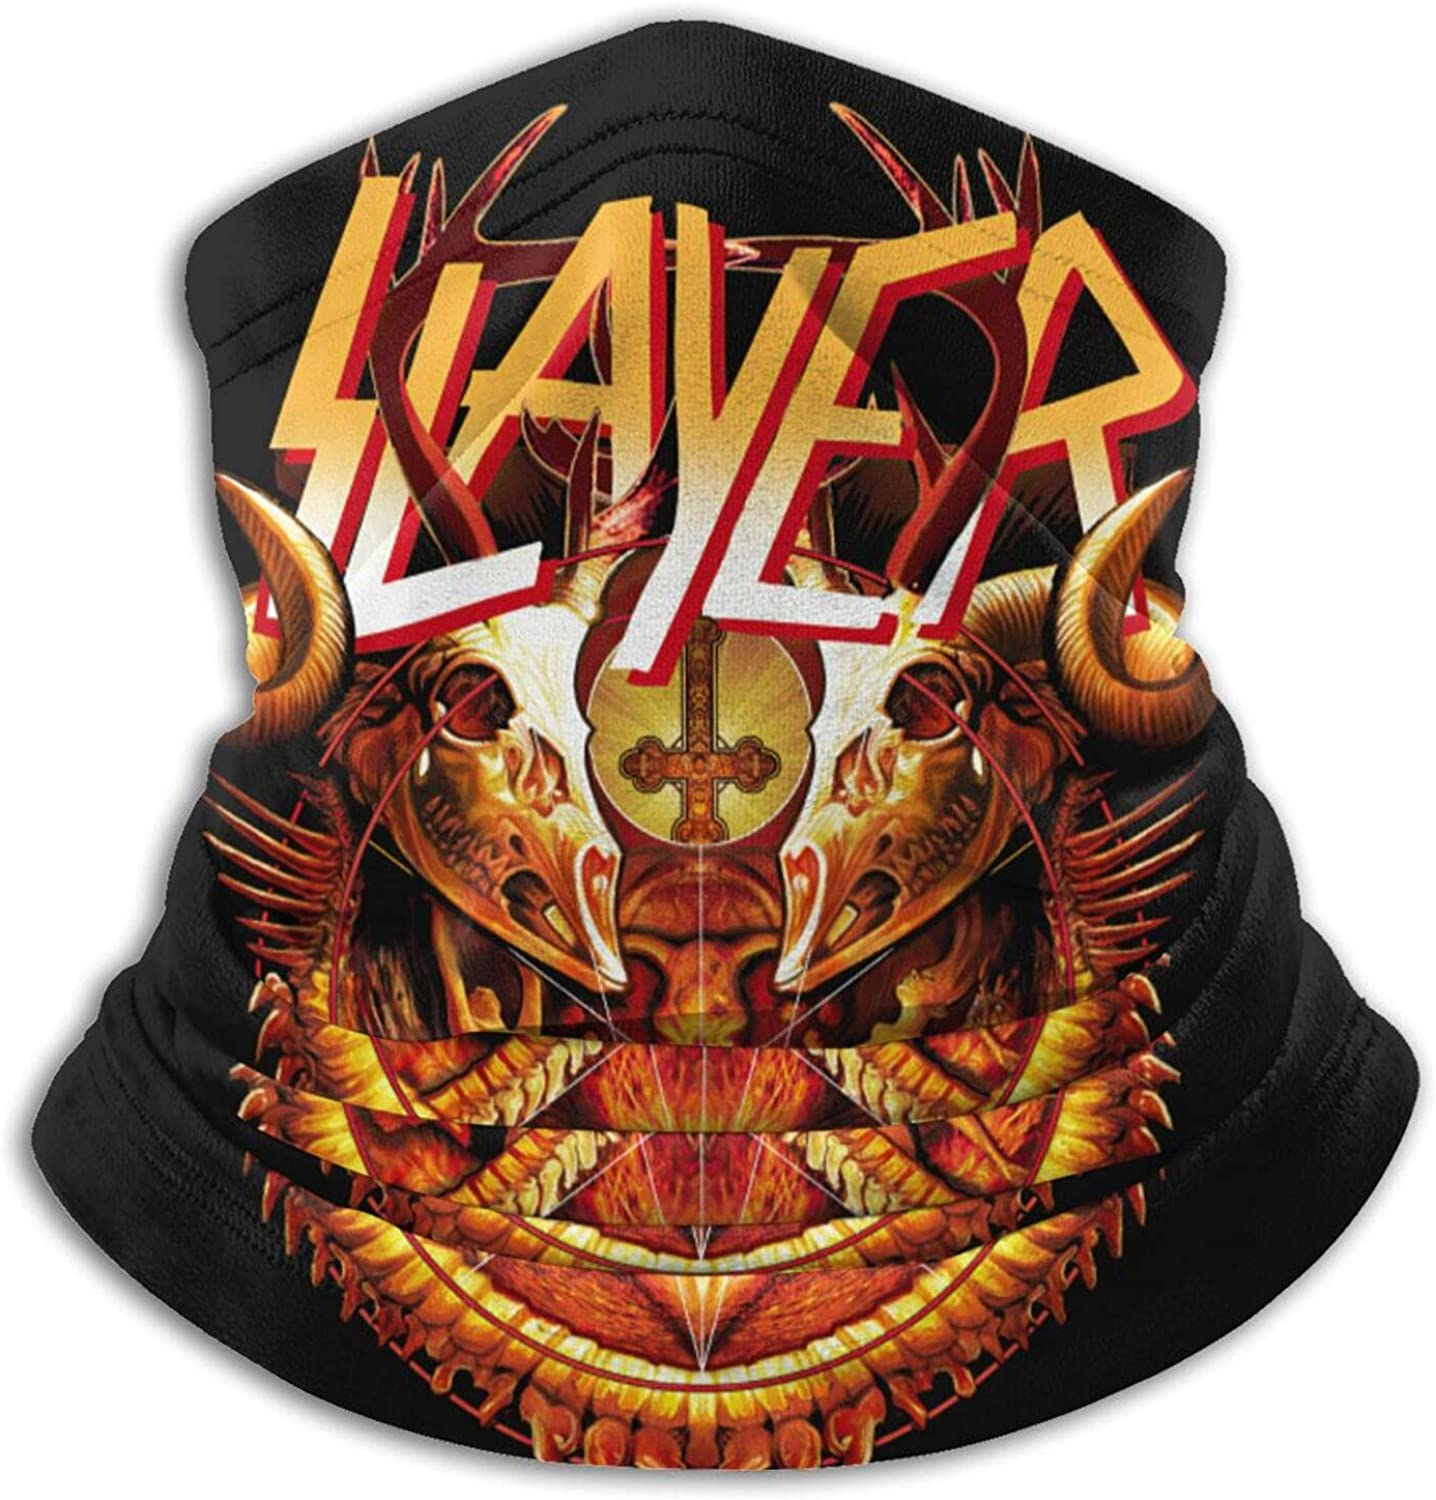 Slayer Unisex Neck Gaiter Face Mask Mens Women'S Multifunction Balaclava Face Cover,Cycling Mask,Sport Neck Gaiter,Hiking Scarf,Fishing Mask,Sunscreen Breathable Bandana, Motorcycle Face Cover